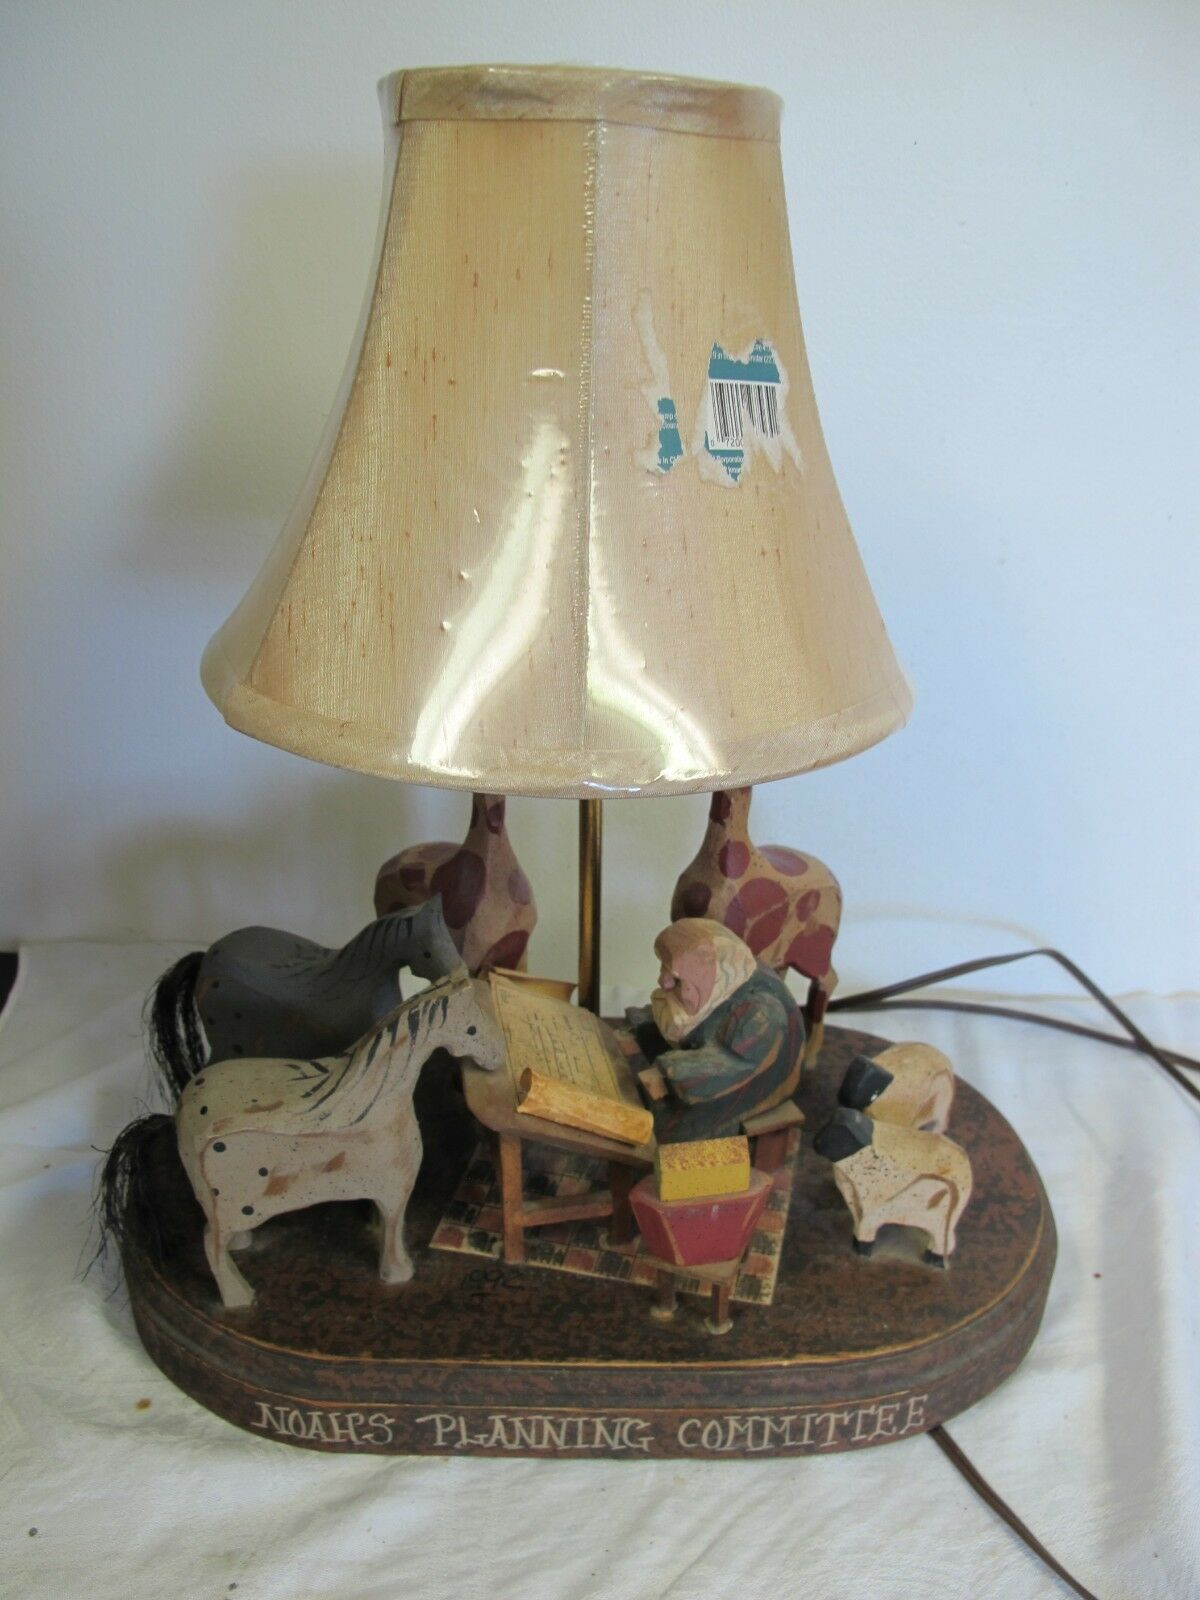 Vintage Nursery Lamp Noah S Planning Committee Barry Grosscup 1 Of 12only Available